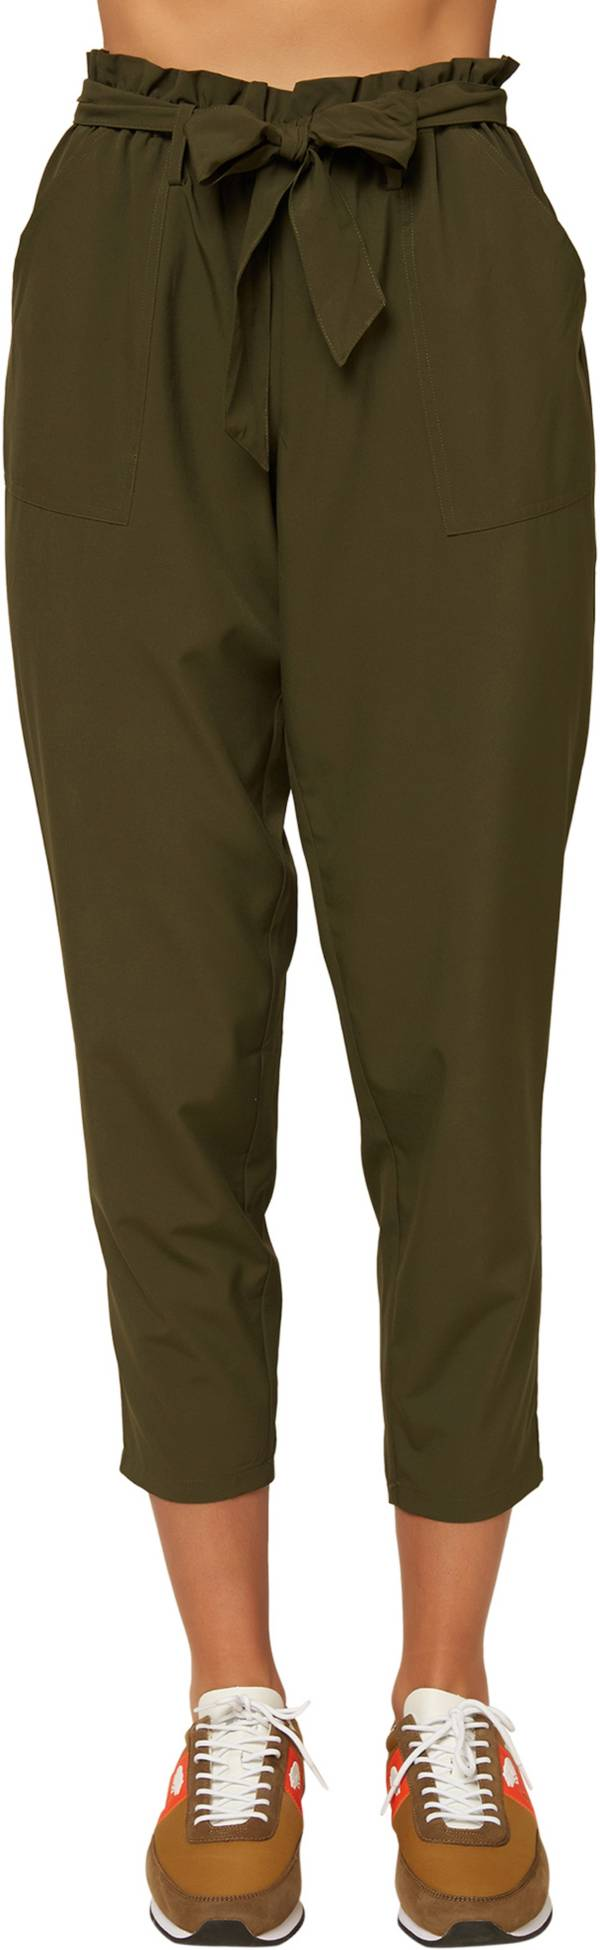 O'Neill Women's Layover Hybrid Pants product image